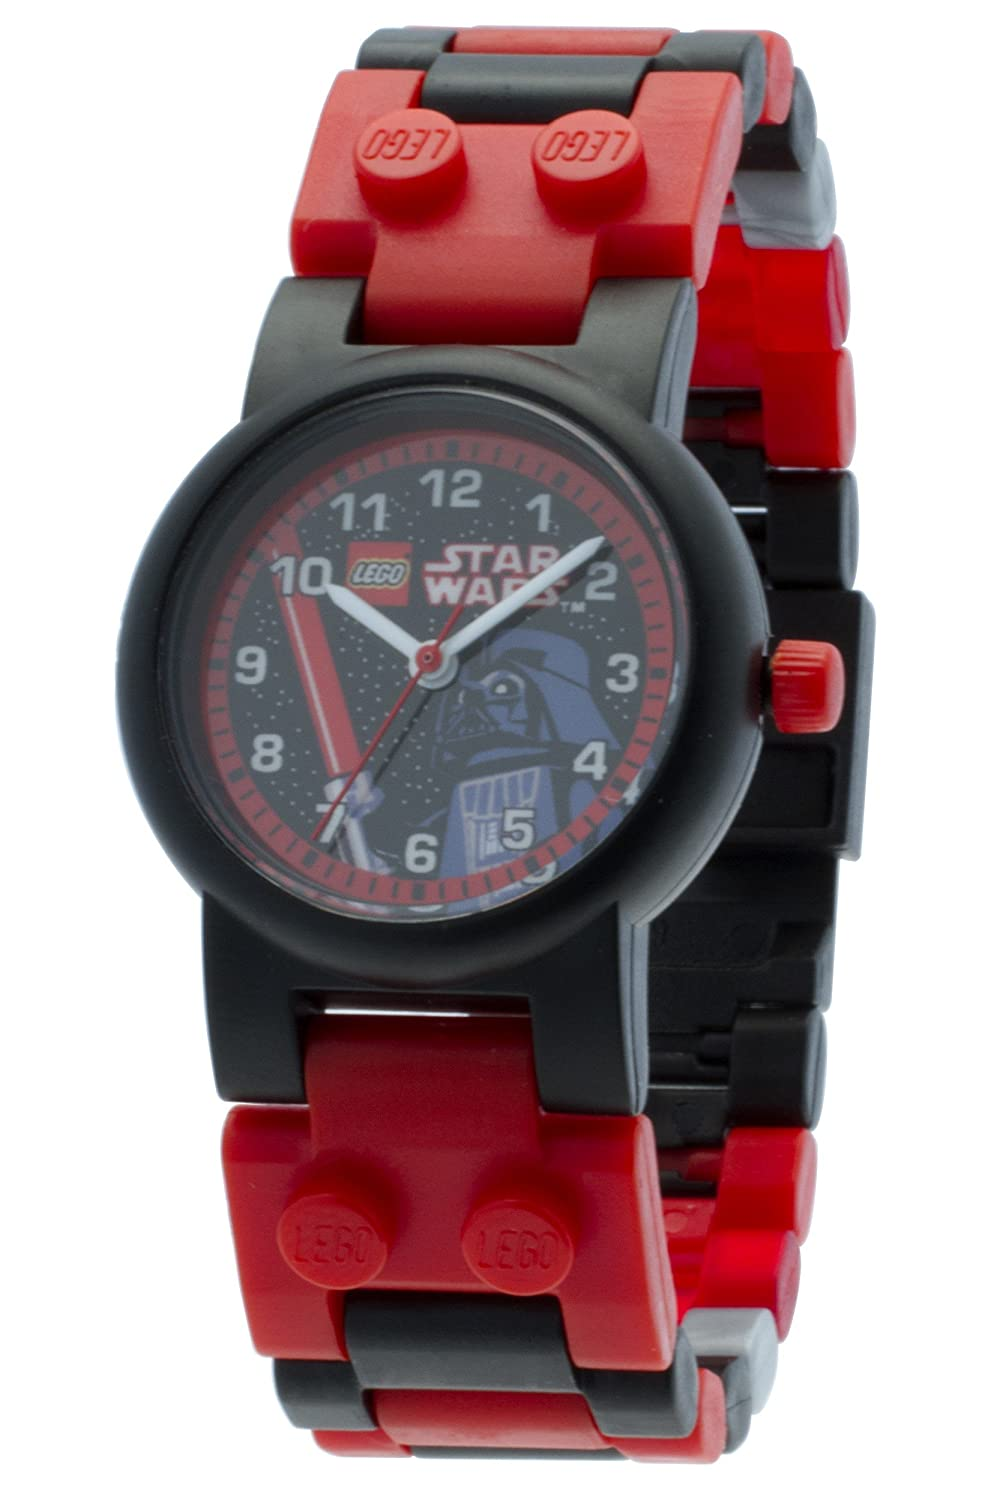 LEGO Star Wars 8020301 Darth Vader Kids Buildable Watch with Link Bracelet and Mini Figure | red/black | plastic | 28mm case diameter | analog quartz | boy girl | official